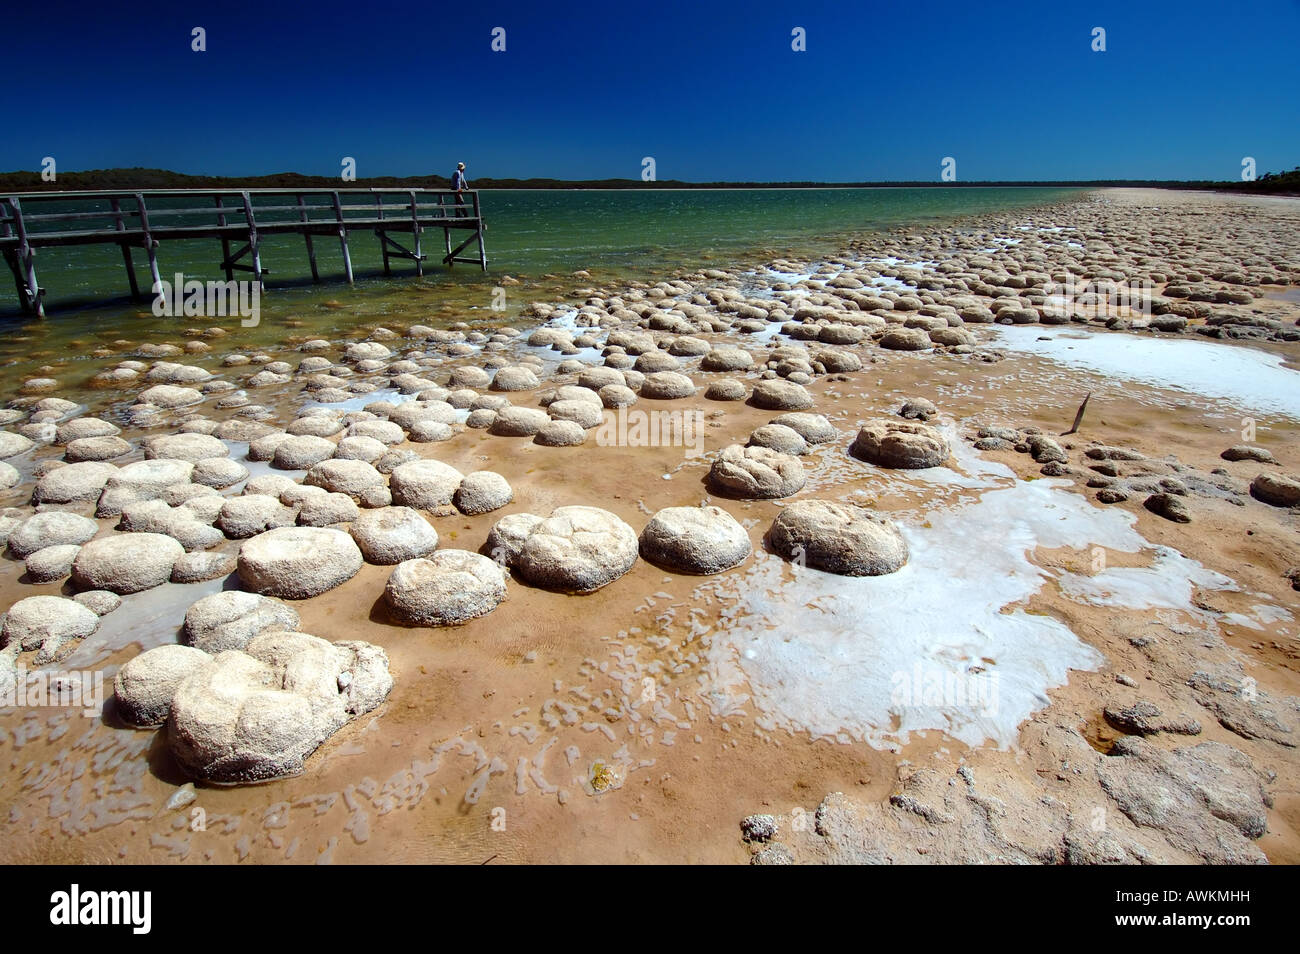 Tourist viewing ancient domed thrombolites from boardwalk on the shore of Lake Clifton, Yalgorup National Park - Stock Image